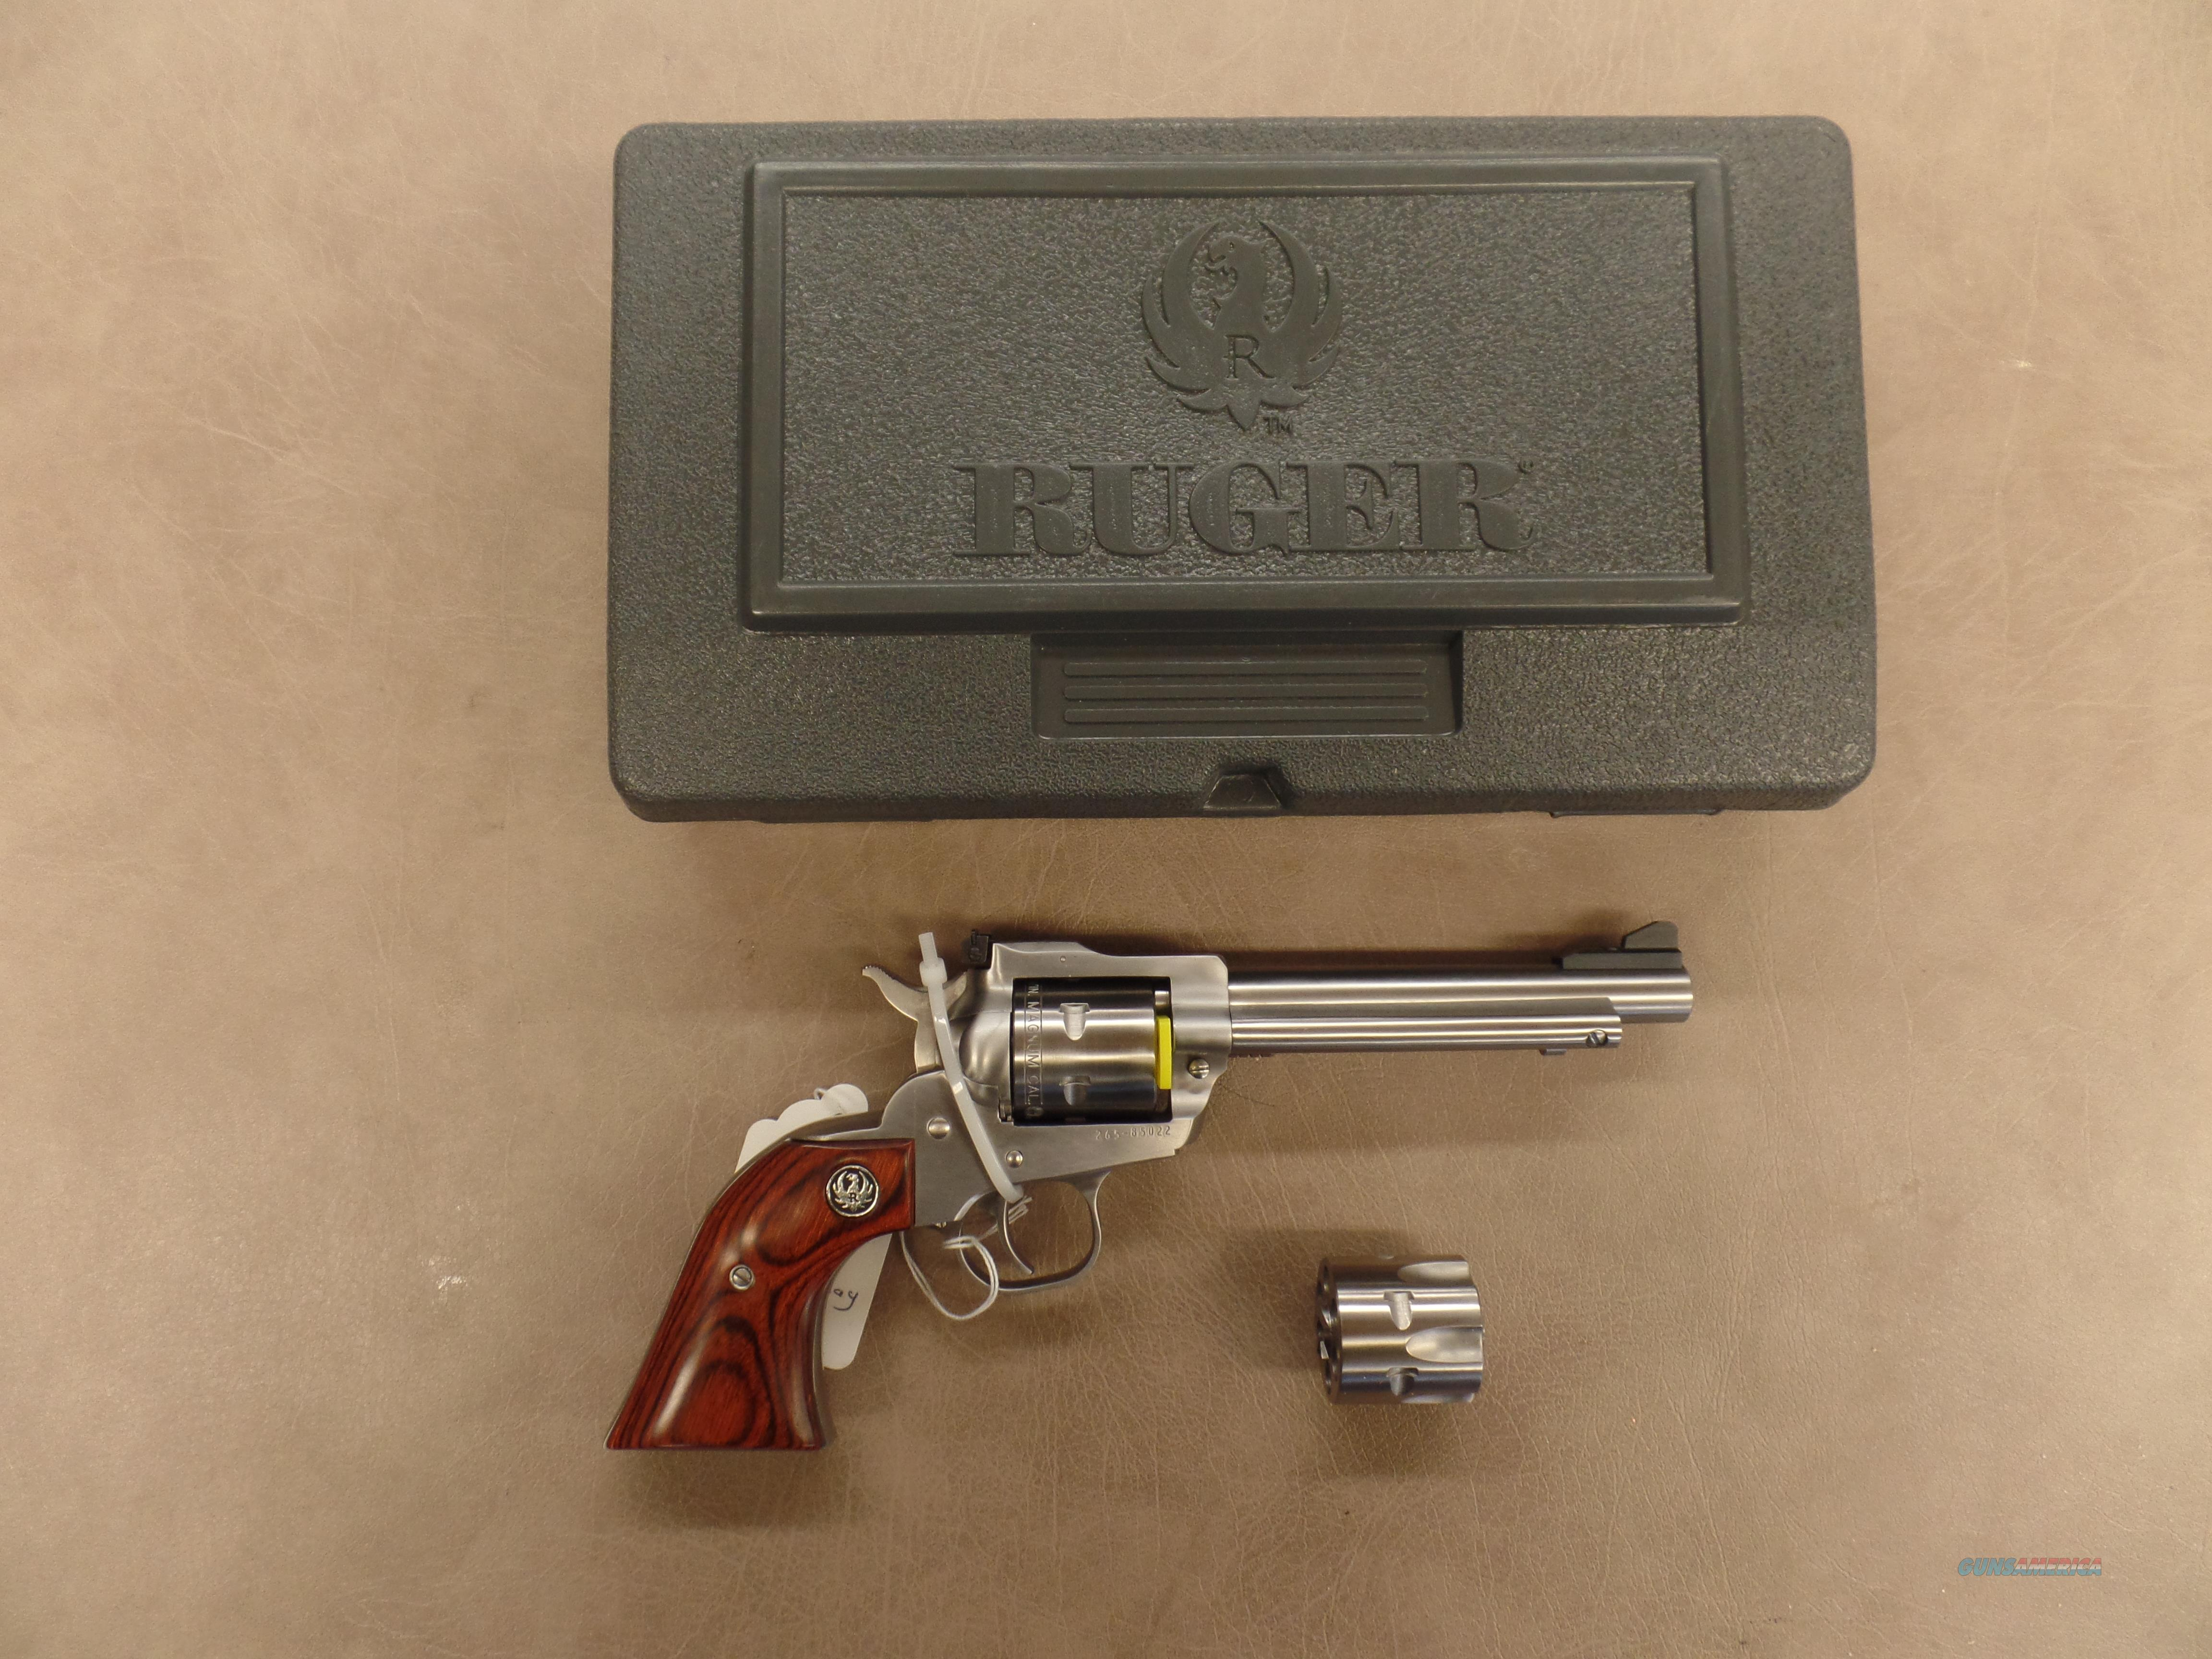 Ruger Single Six SS 22LR/22Mag  Guns > Pistols > Ruger Single Action Revolvers > Single Six Type